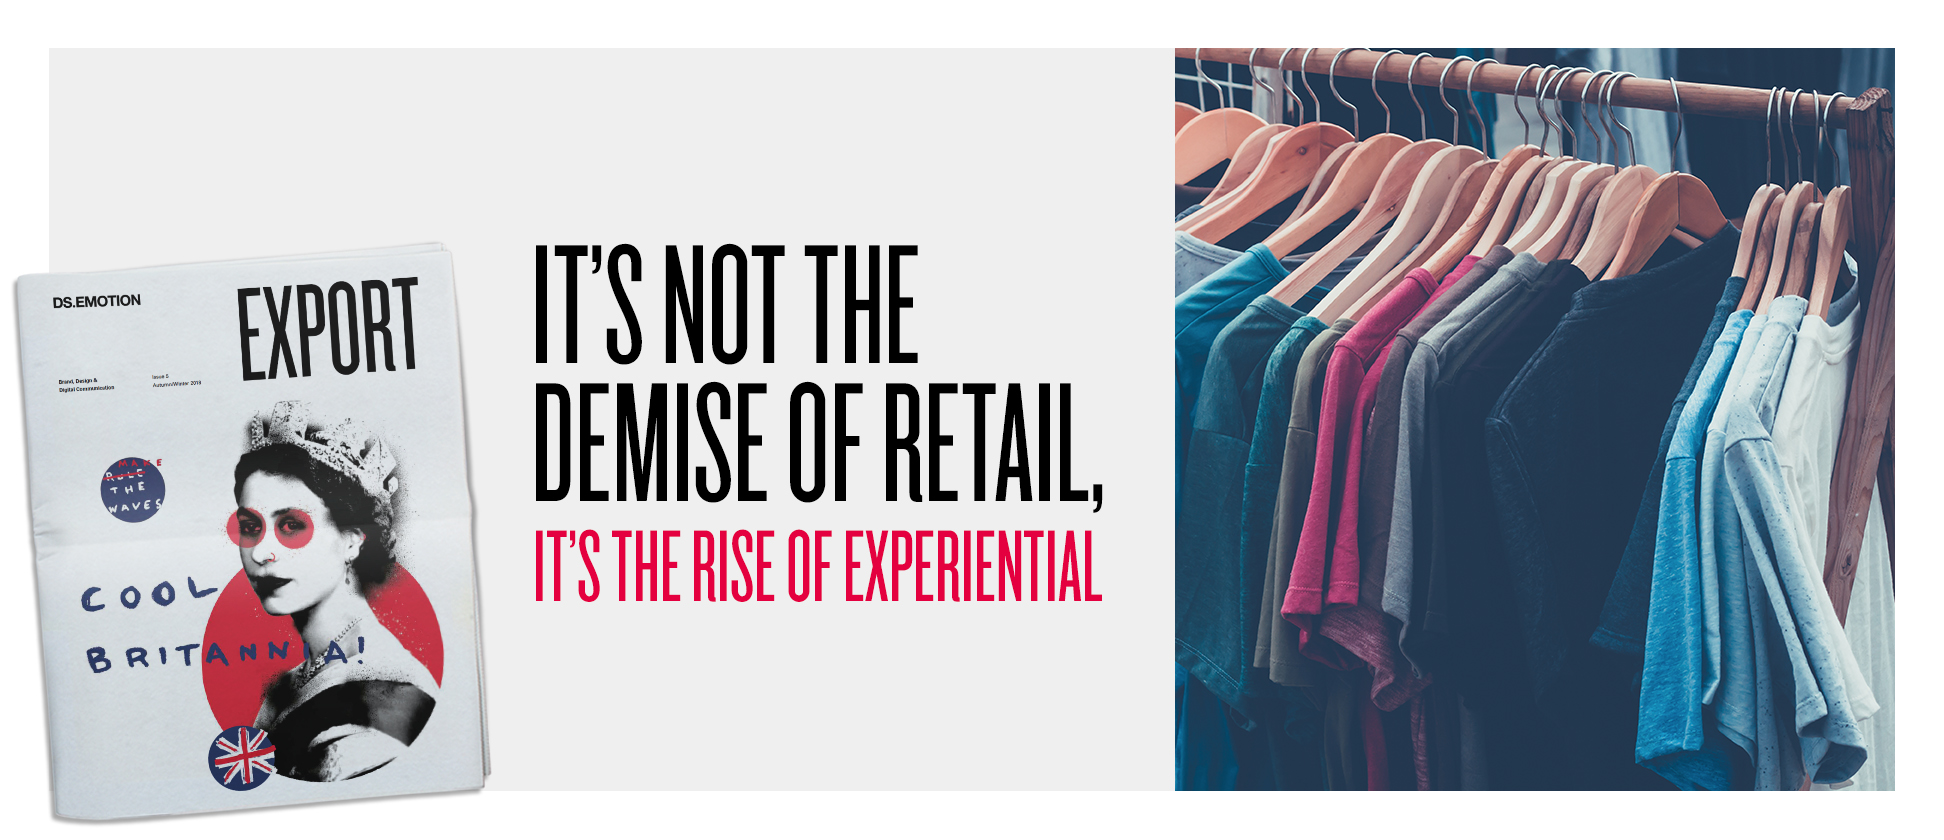 It's not the demise of retail, it's the rise of experiential